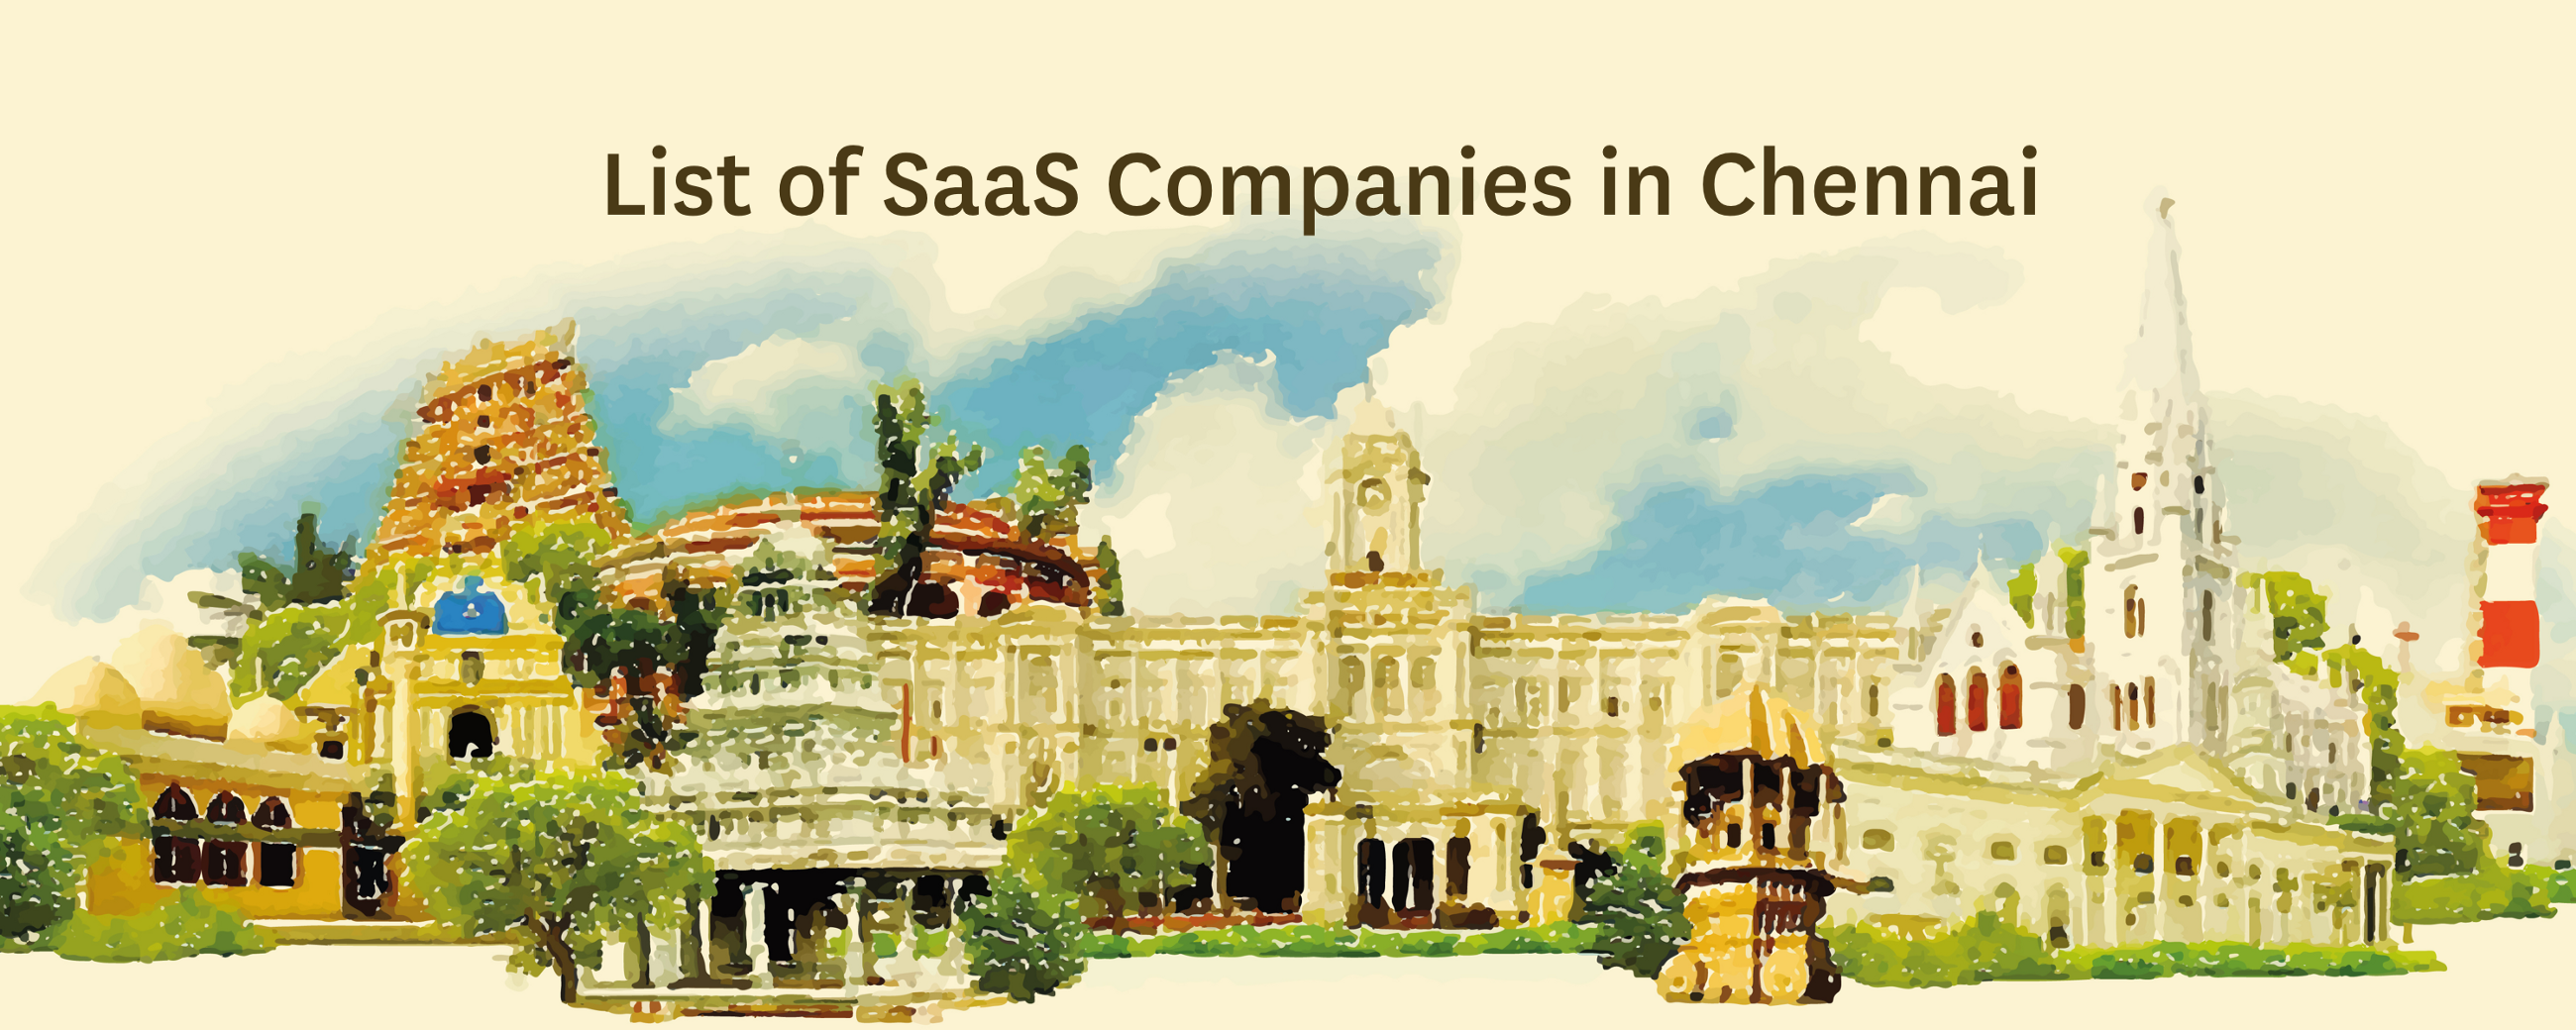 List of SaaS Companies in Chennai - By